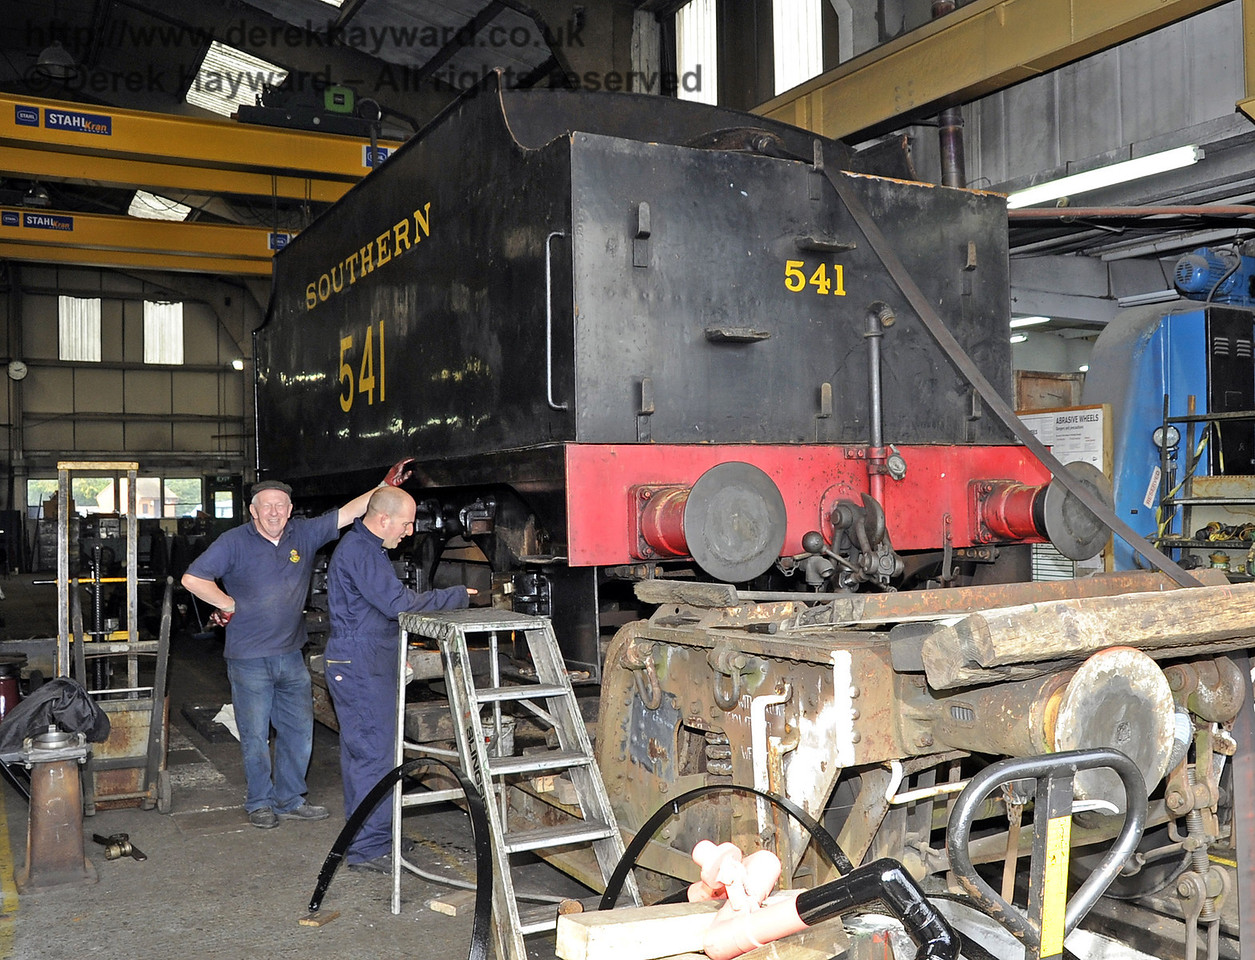 The tender from 541 in Sheffield Park Workshops.  24.09.2011  2922